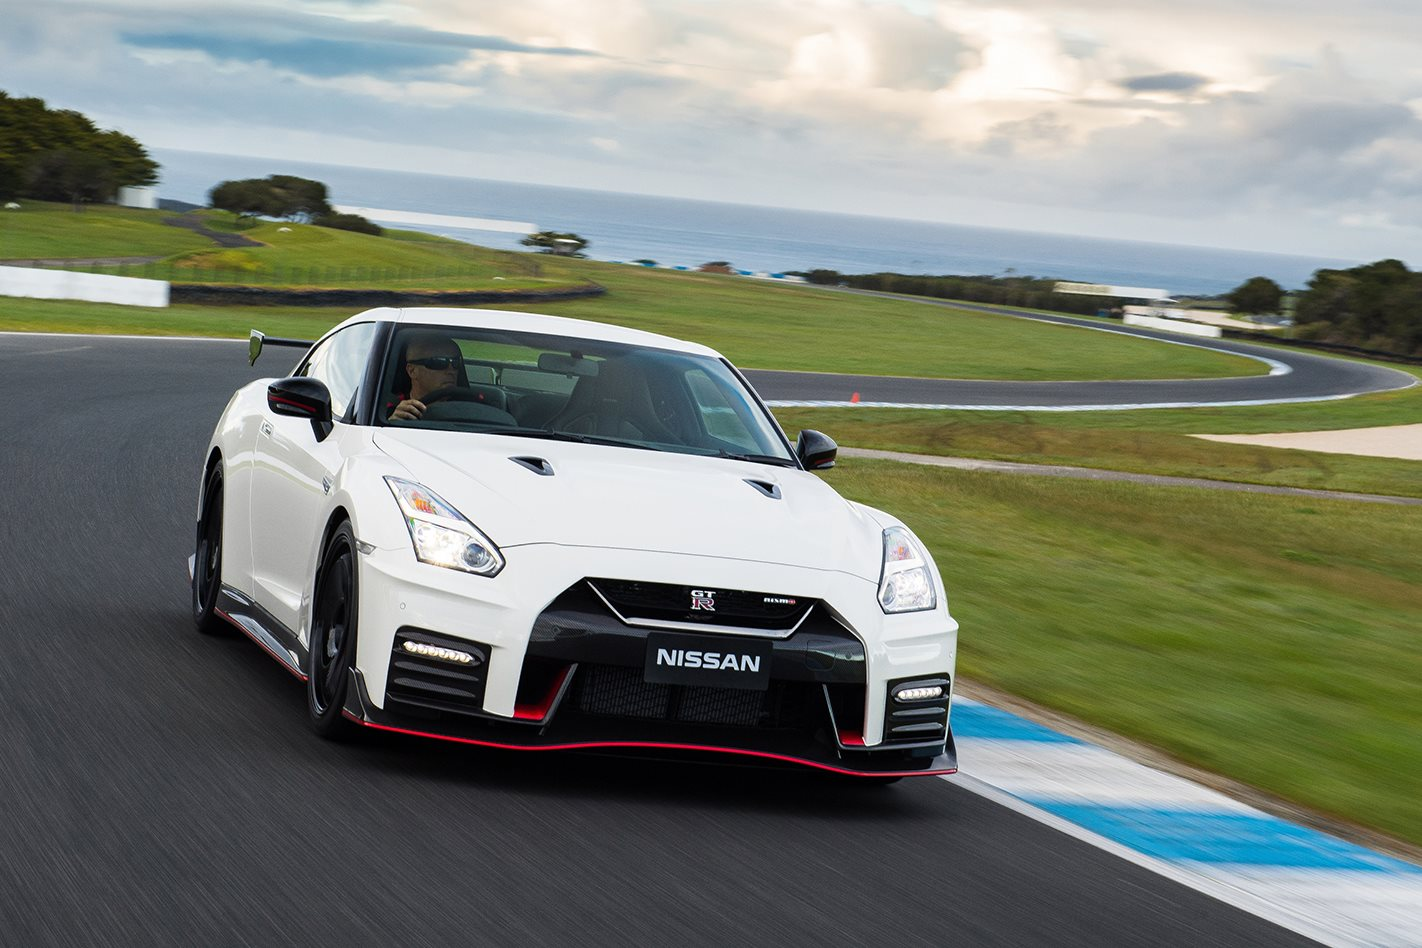 Nissans Next Gt R Will Be Fastest Super Sports Car In The World Nissan Gtr R35 Sketch Top Dog Nismo Form Current Produces A Stout 441kw And 652nm From 38 Litre Twin Turbo V6 Weighs At Fairly Porky 1739kg Empty